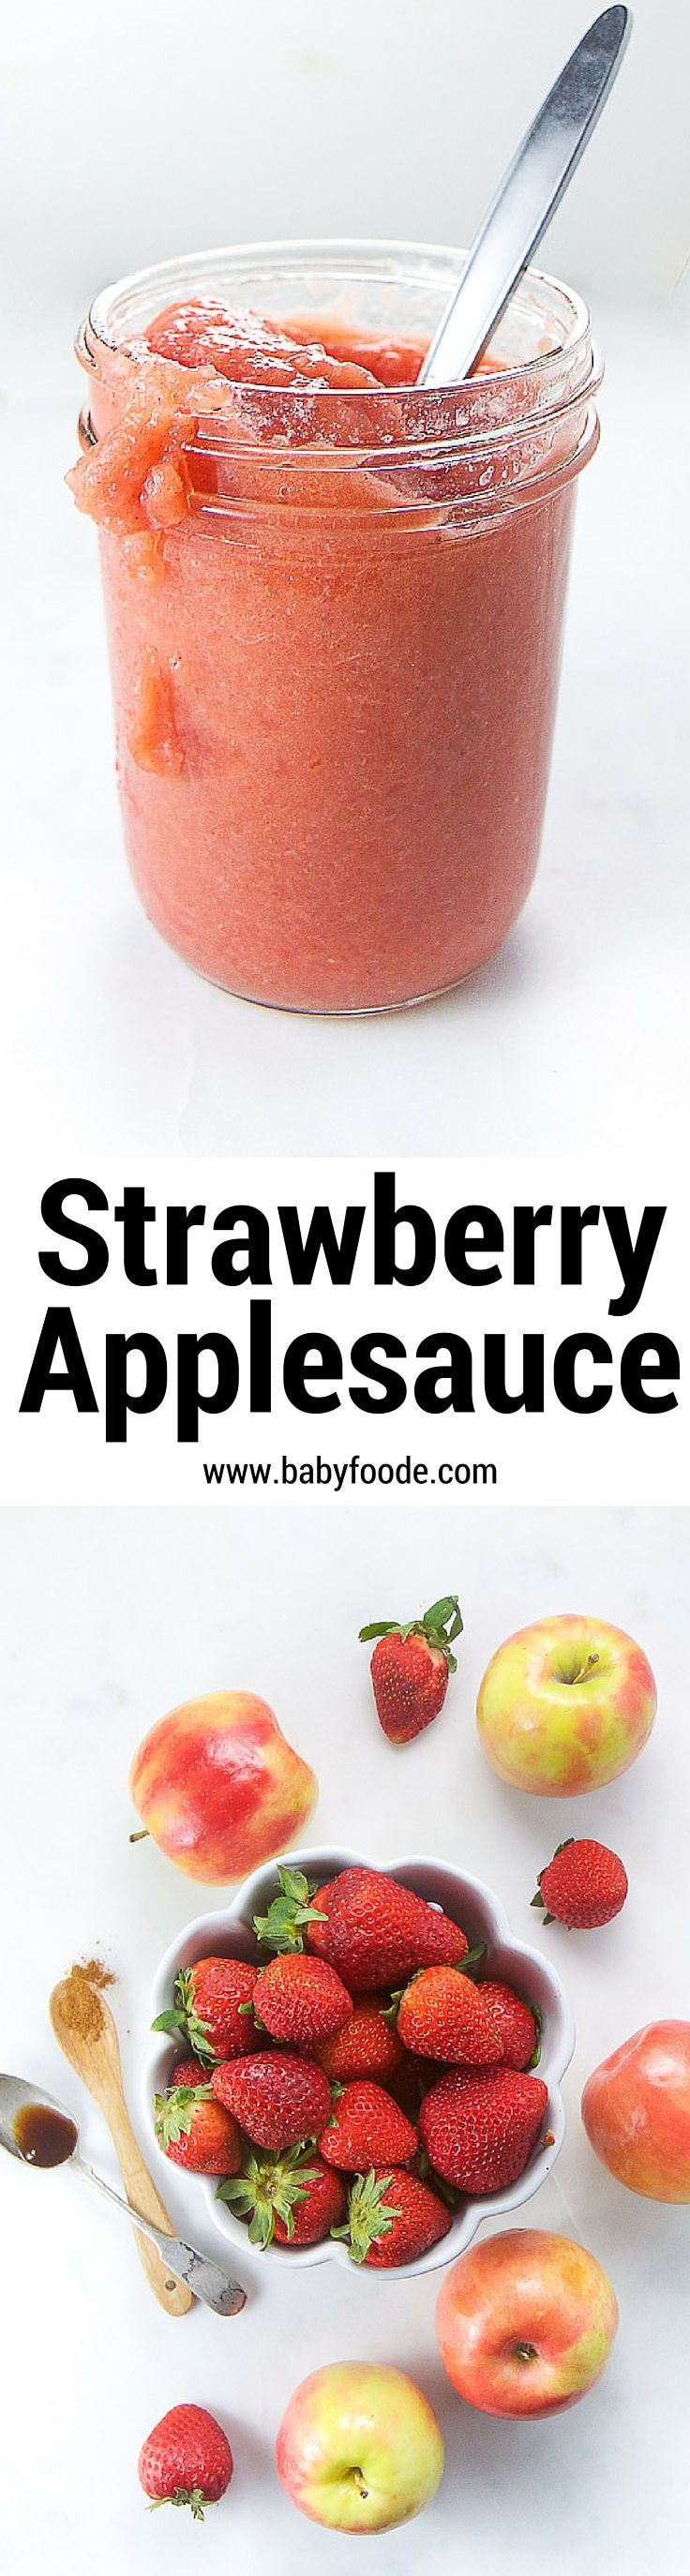 This bold Strawberry Applesauce is made with a ton of strawberries (2 heaping cups), apples, a drizzle of vanilla extract and a pinch of cinnamon. It's amazing served for breakfast, with lunch or as an afternoon snack.